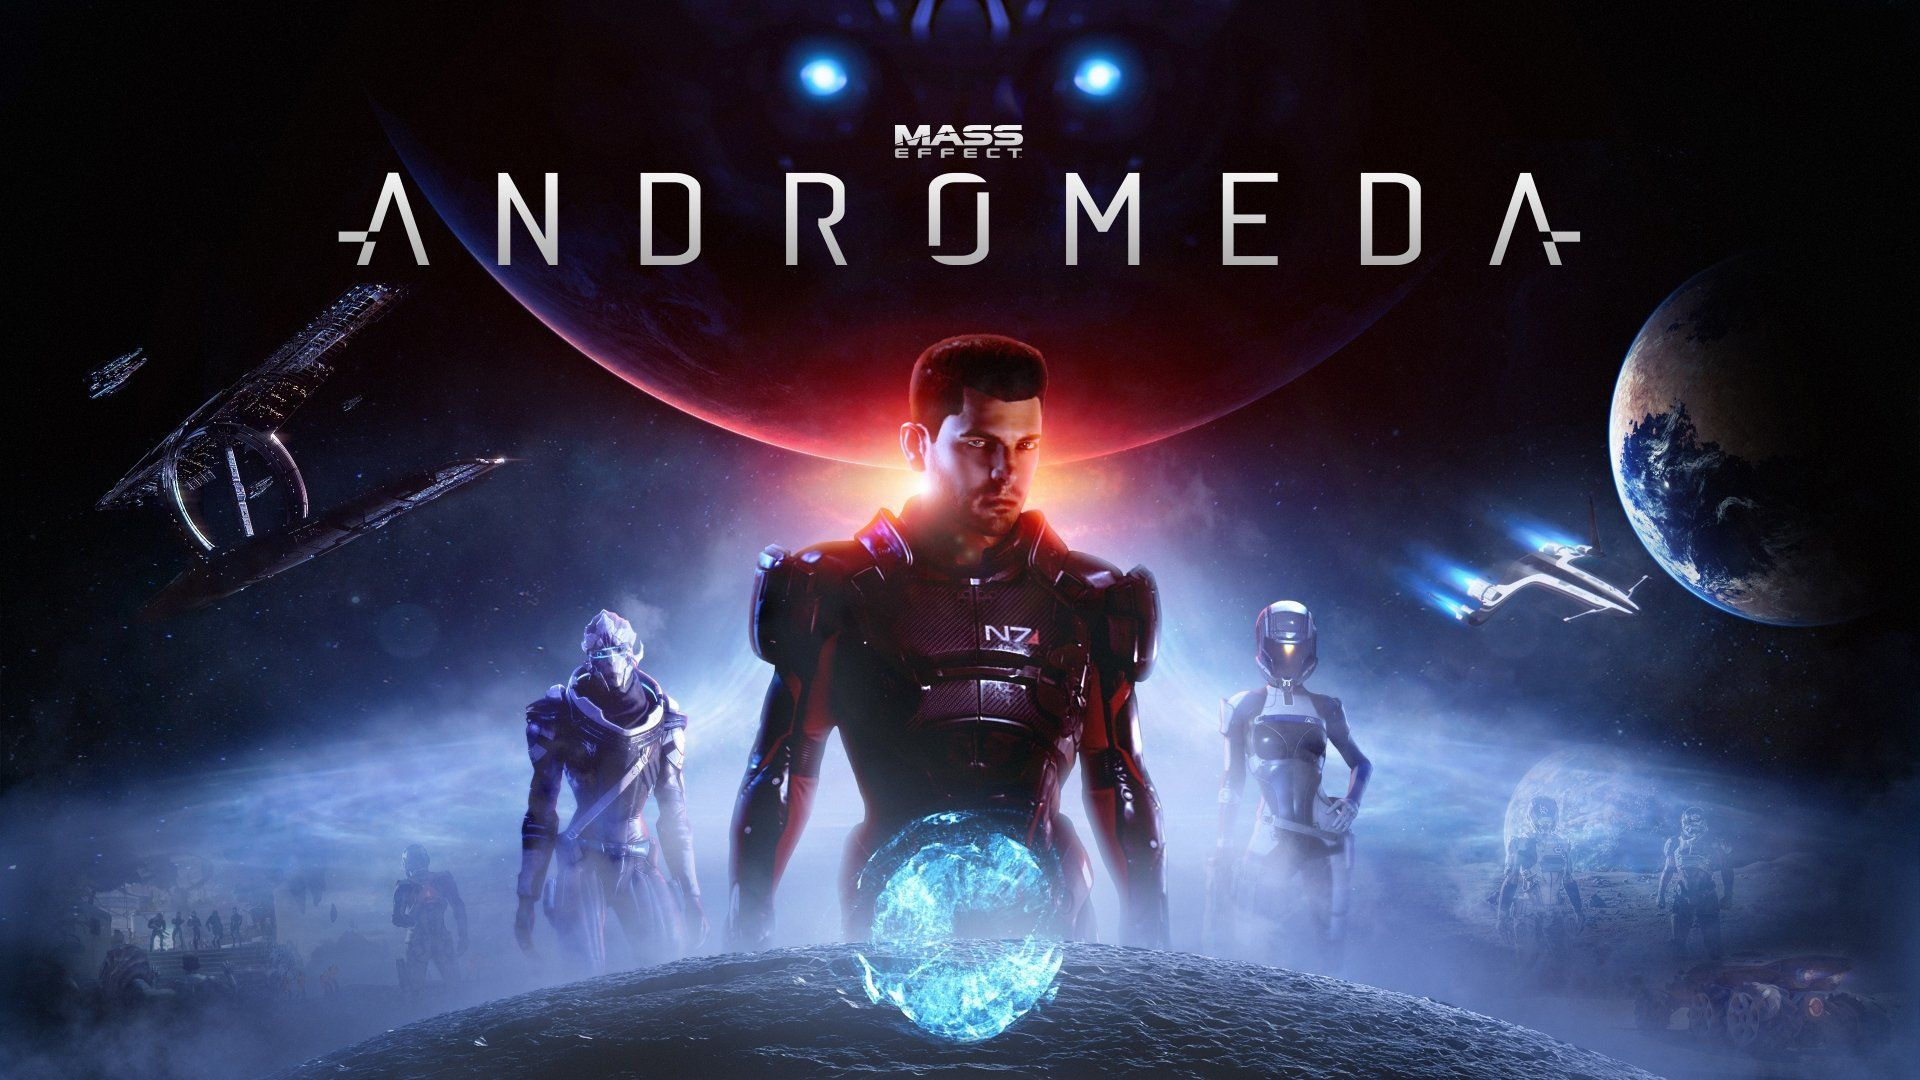 3840x2160 Mass Effect Andromeda Wallpaper Background Image View Download Comment And Rate Wallpaper A Mass Effect Mass Effect Universe Background Images